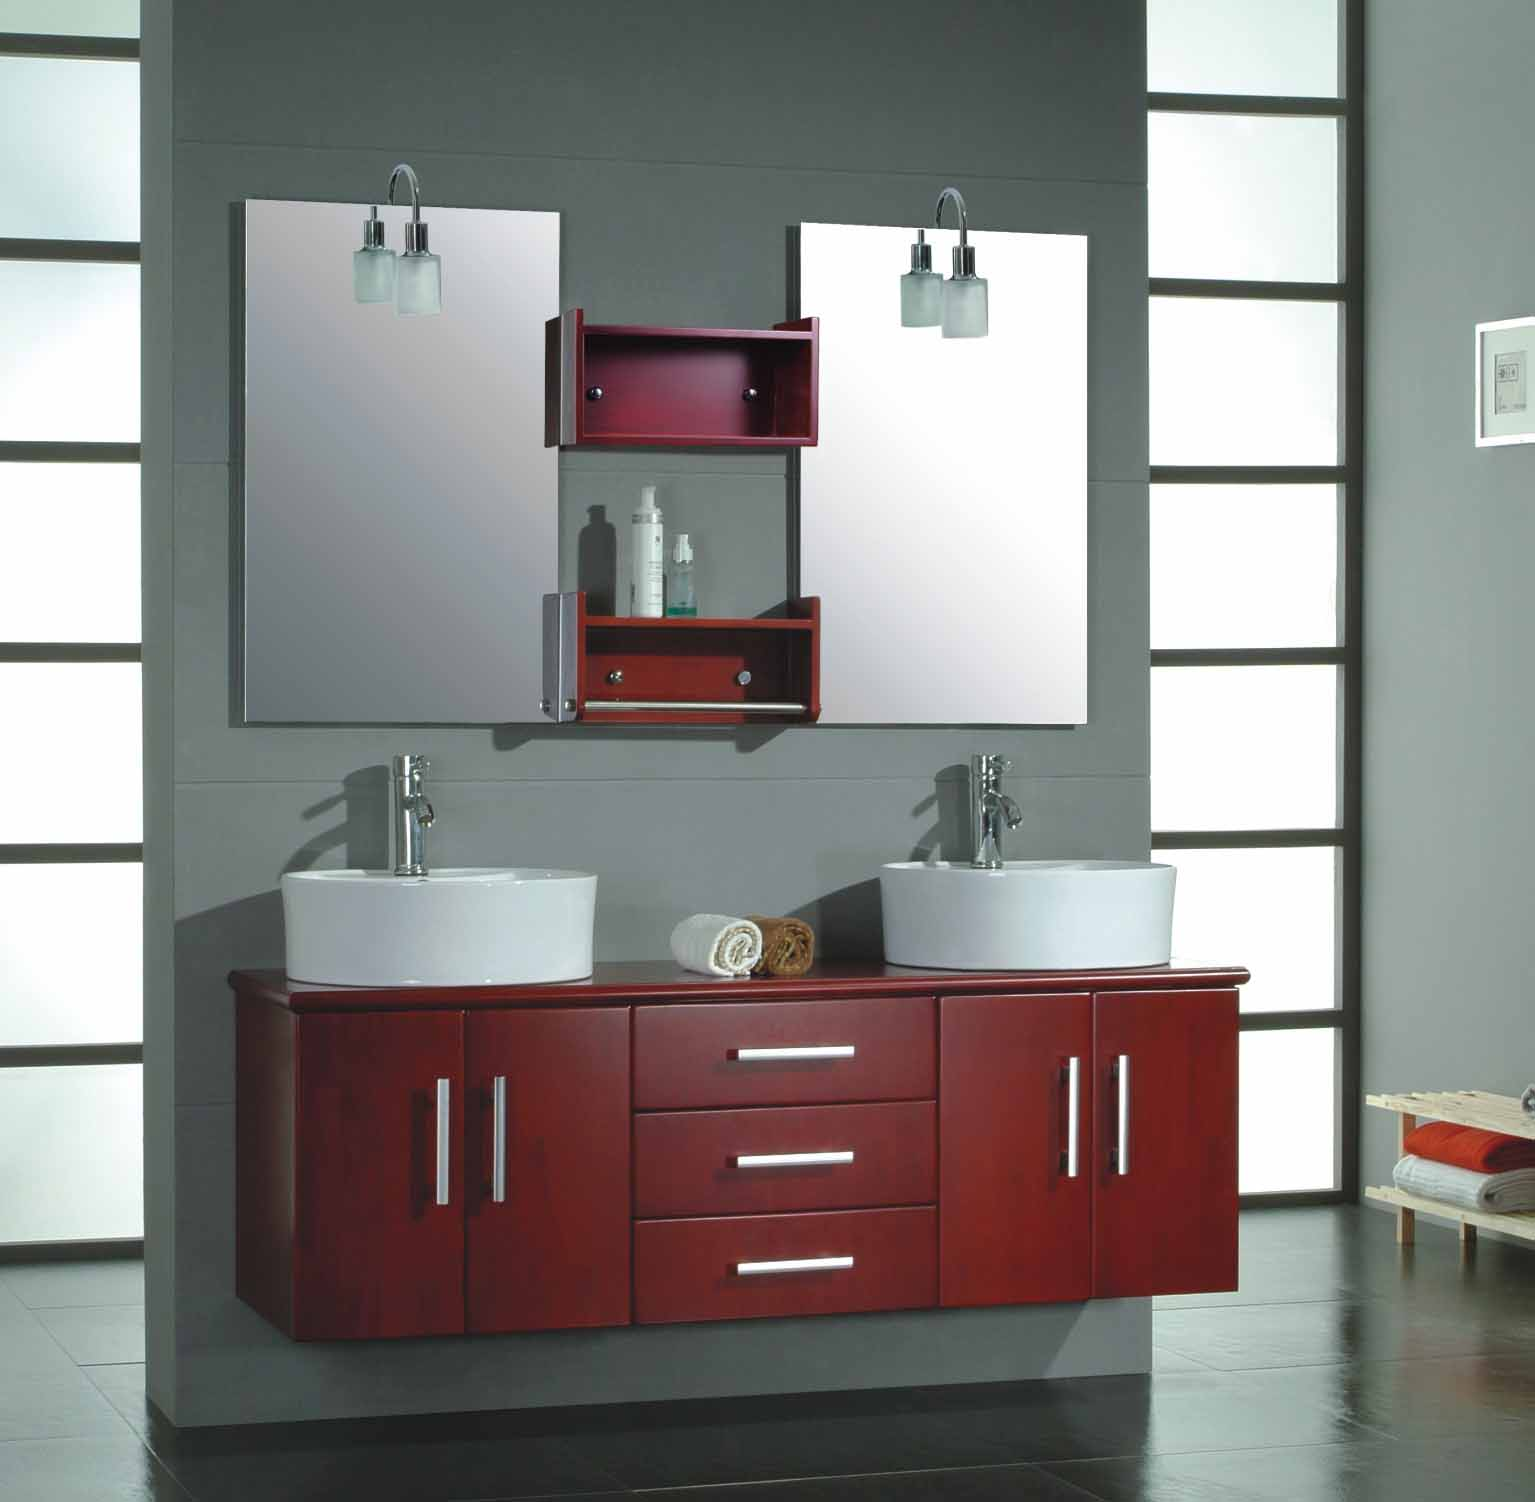 Interior design ideas bathroom furniture choosing for Bathroom furniture